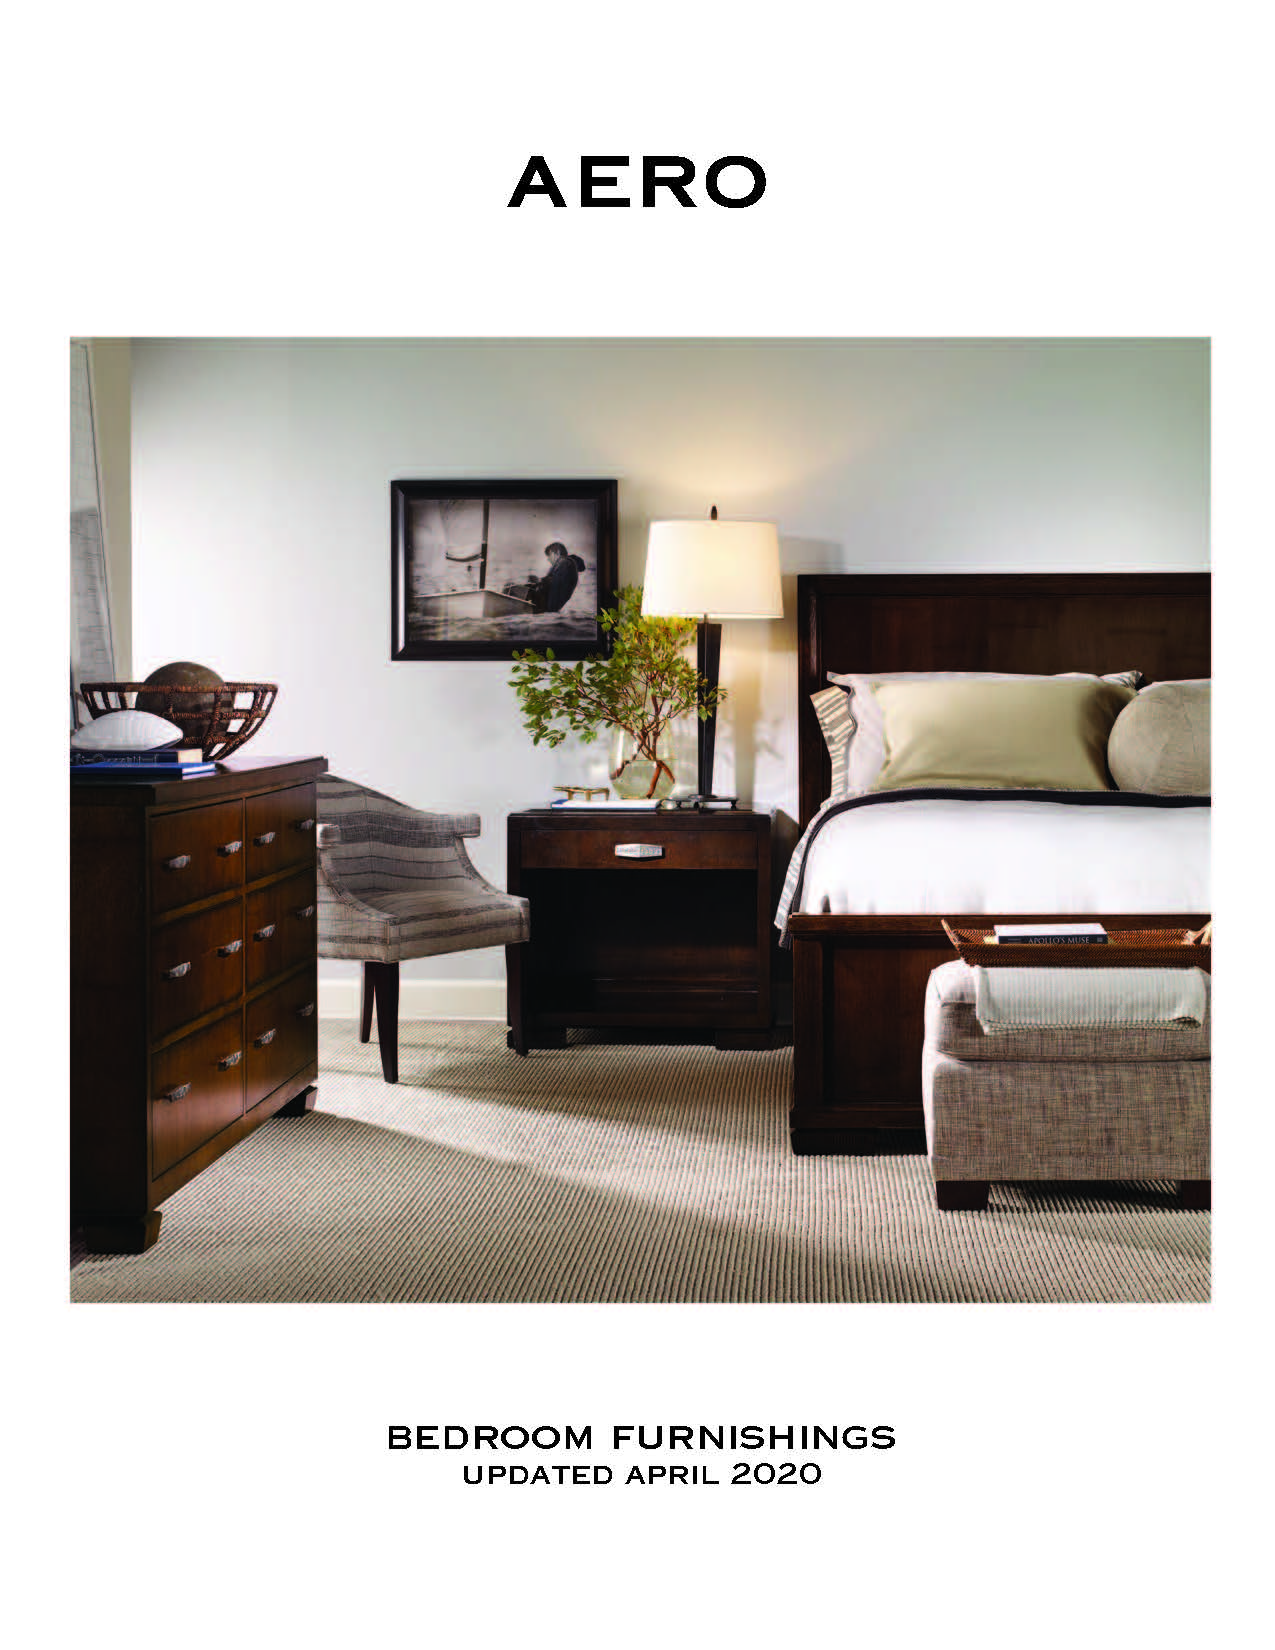 AERO Bedroom Furniture Custom Cover